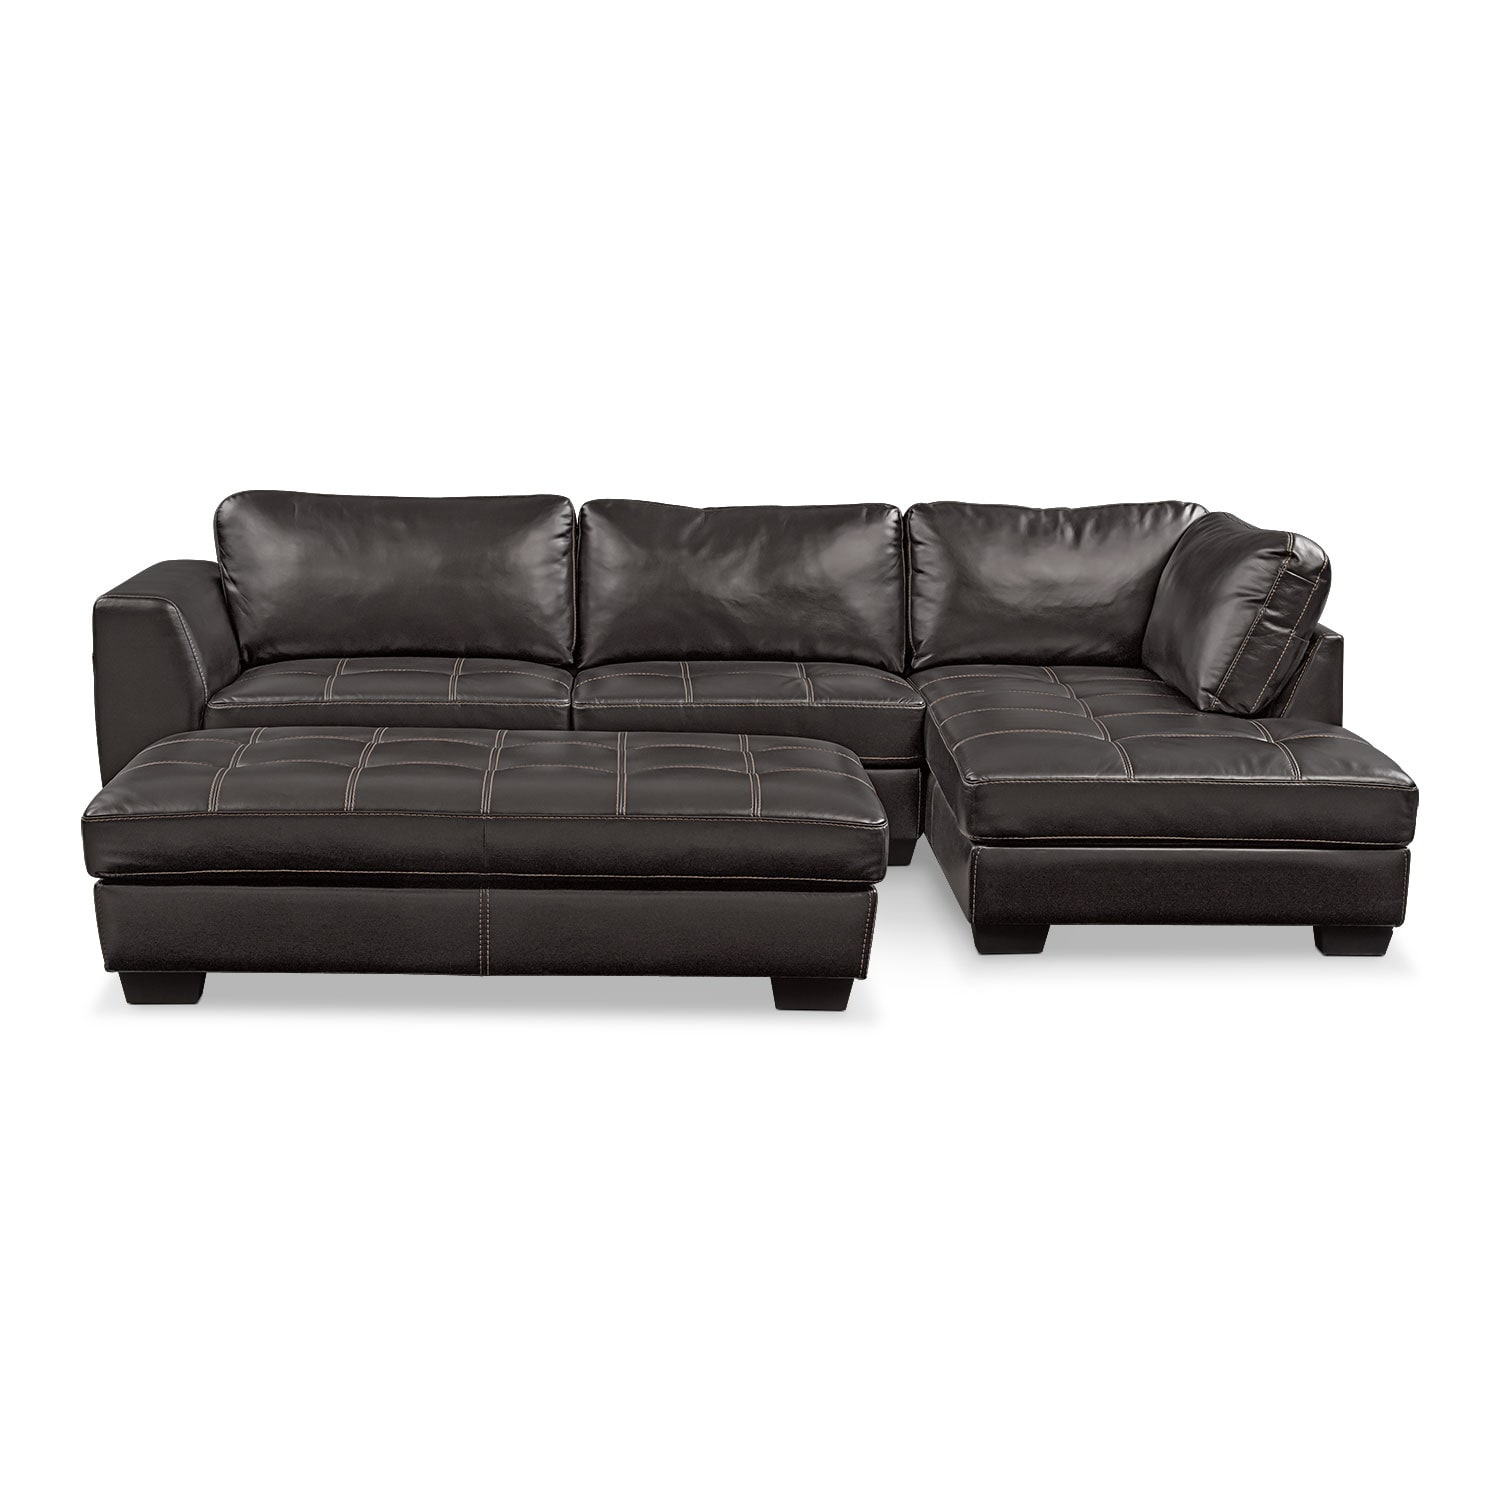 Santana 2 Piece Sectional with Left Facing Chaise Black